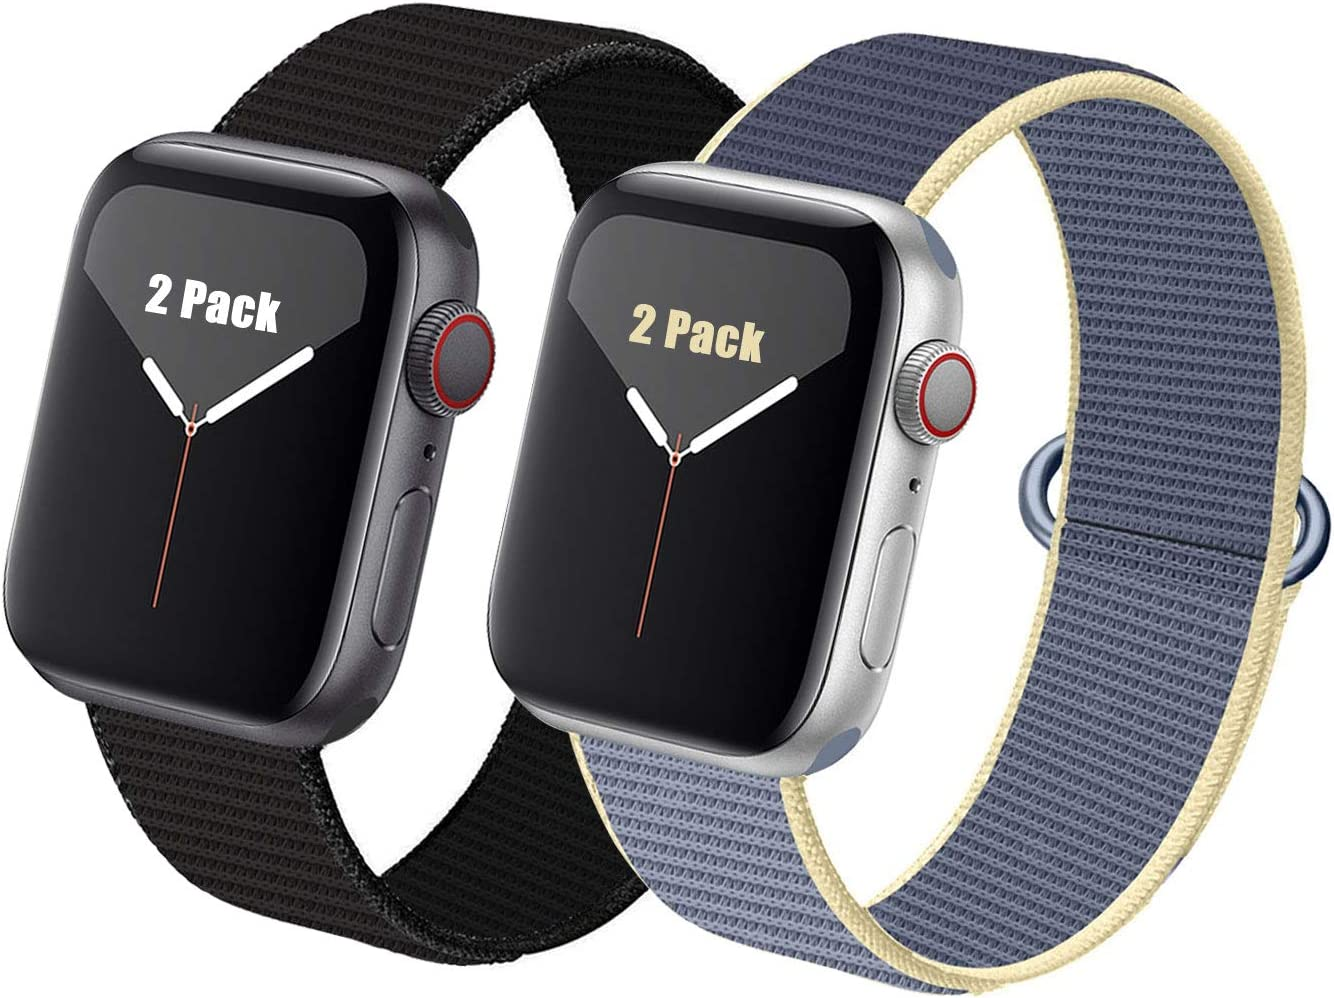 RUOQINI 2 Pack Strap Compatible with Apple Watch Band 38mm 40mm 42mm 44mm,Replacement Bands for iWatch Series 5/4/3/2/1